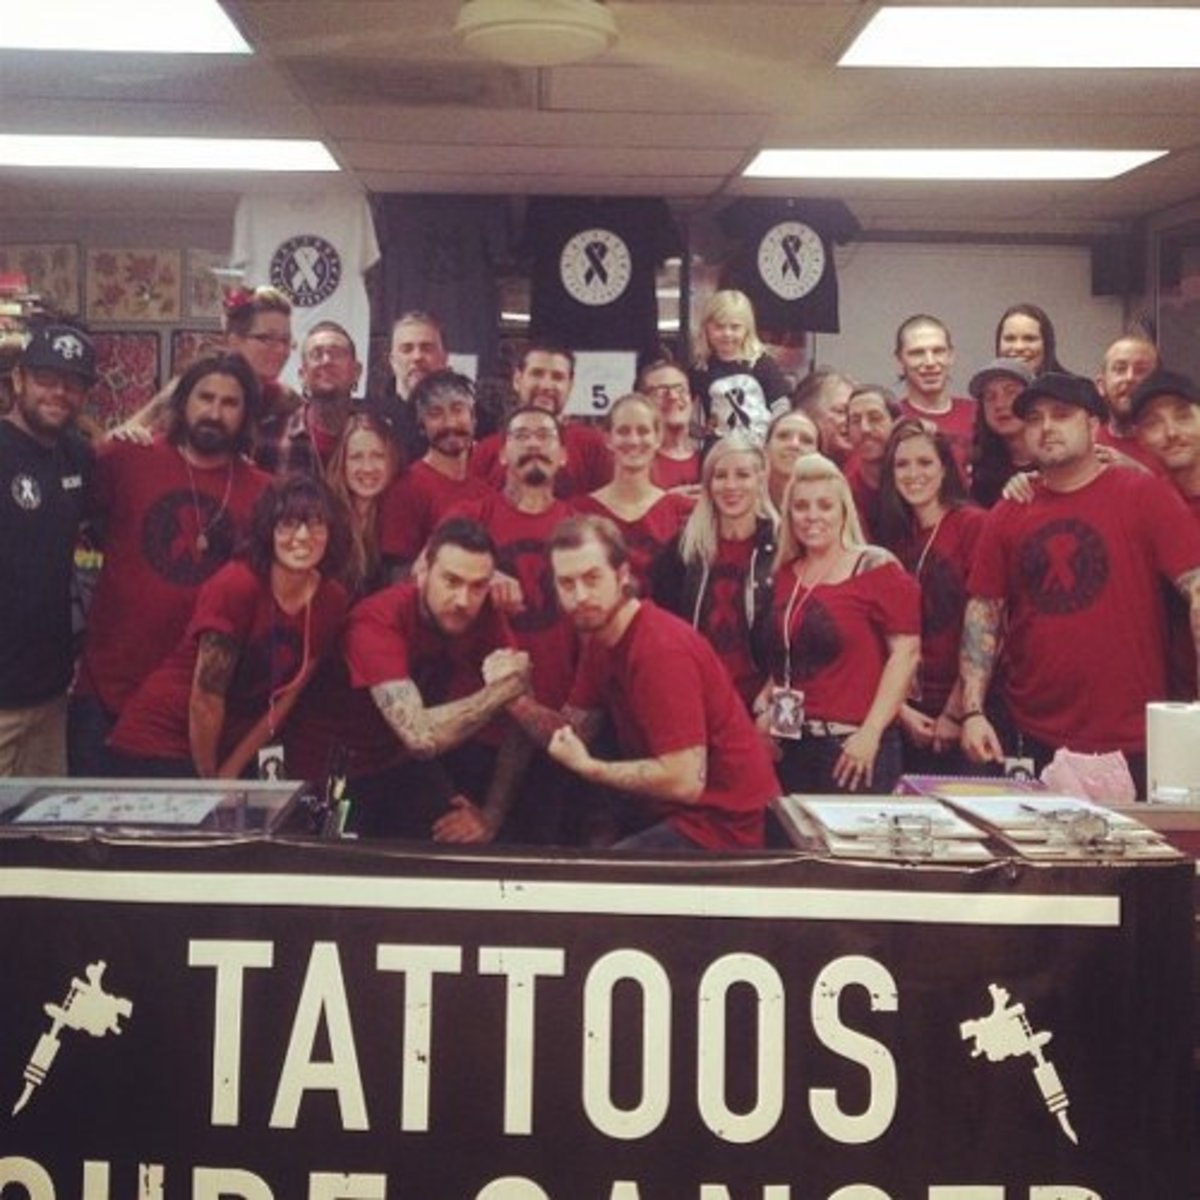 All of the hardworking tattooers at TCC's inaugural event.